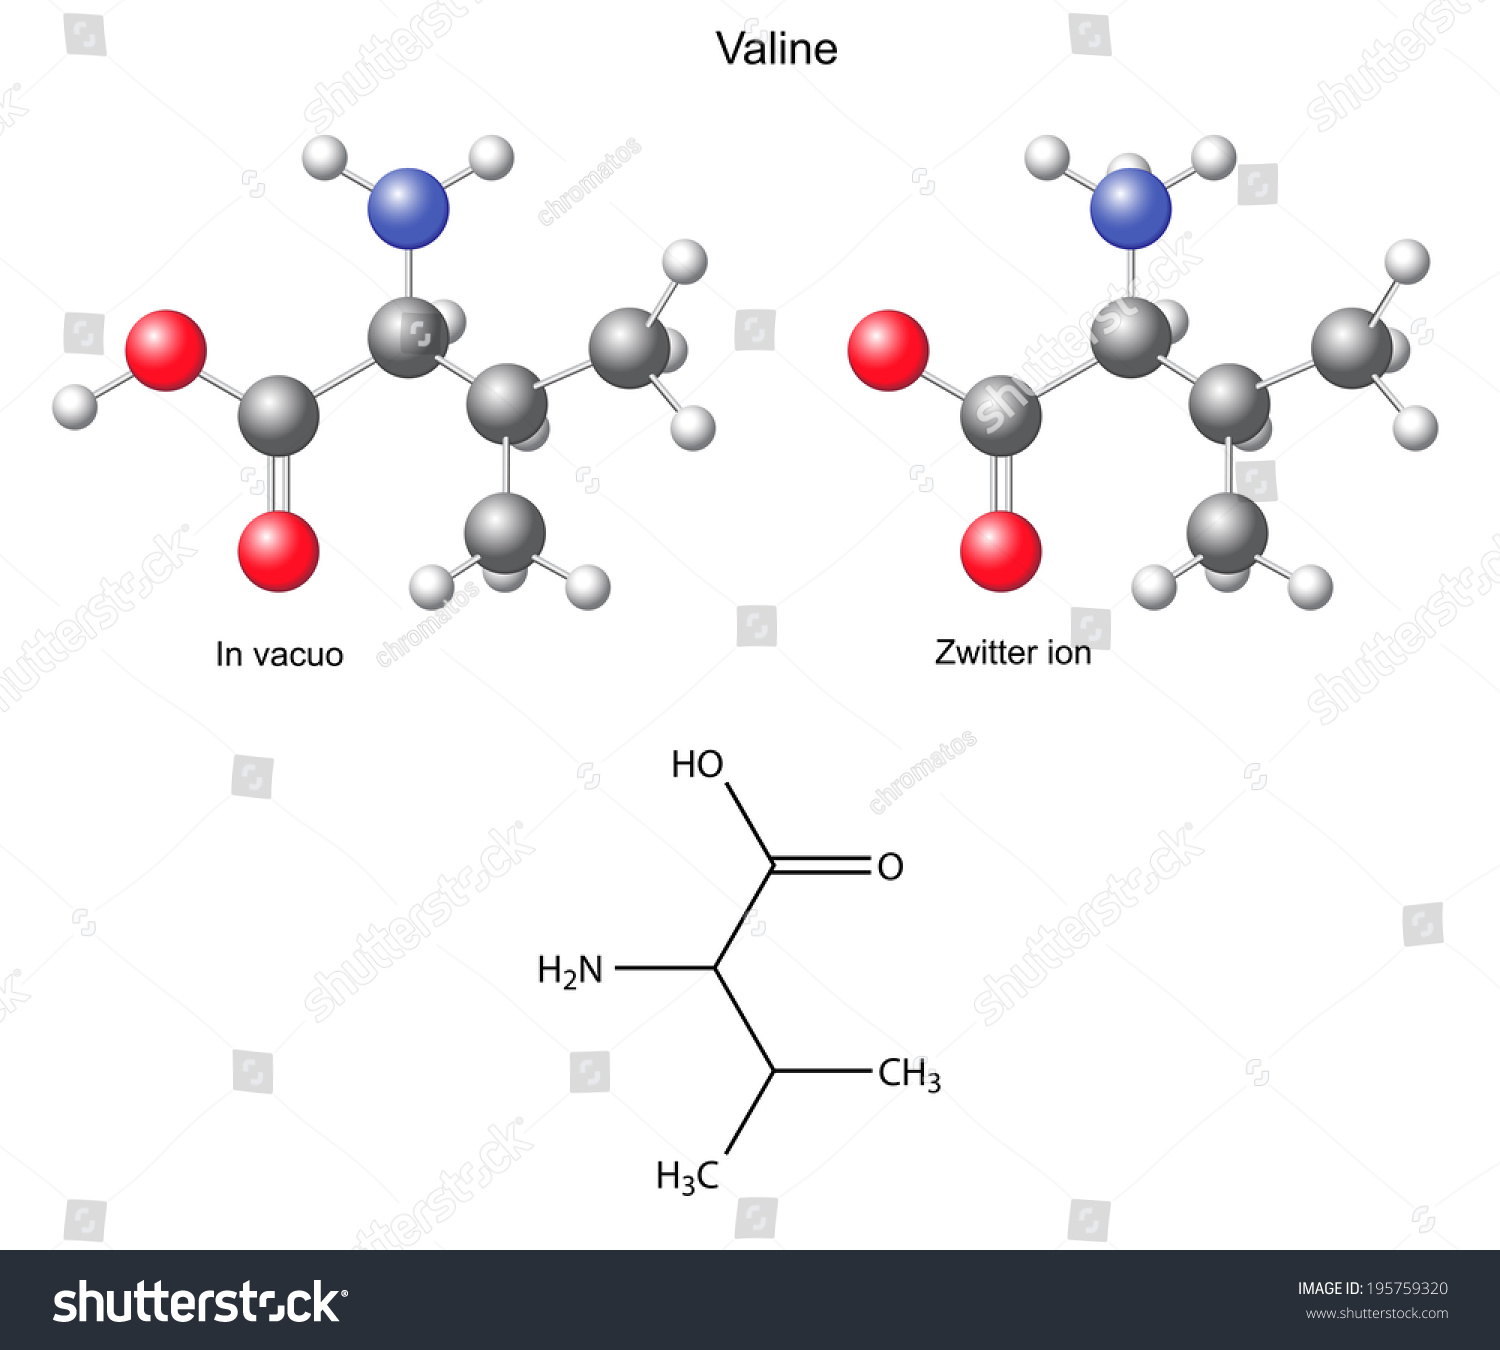 ... valine (val) - chemical structural formula and models, amino